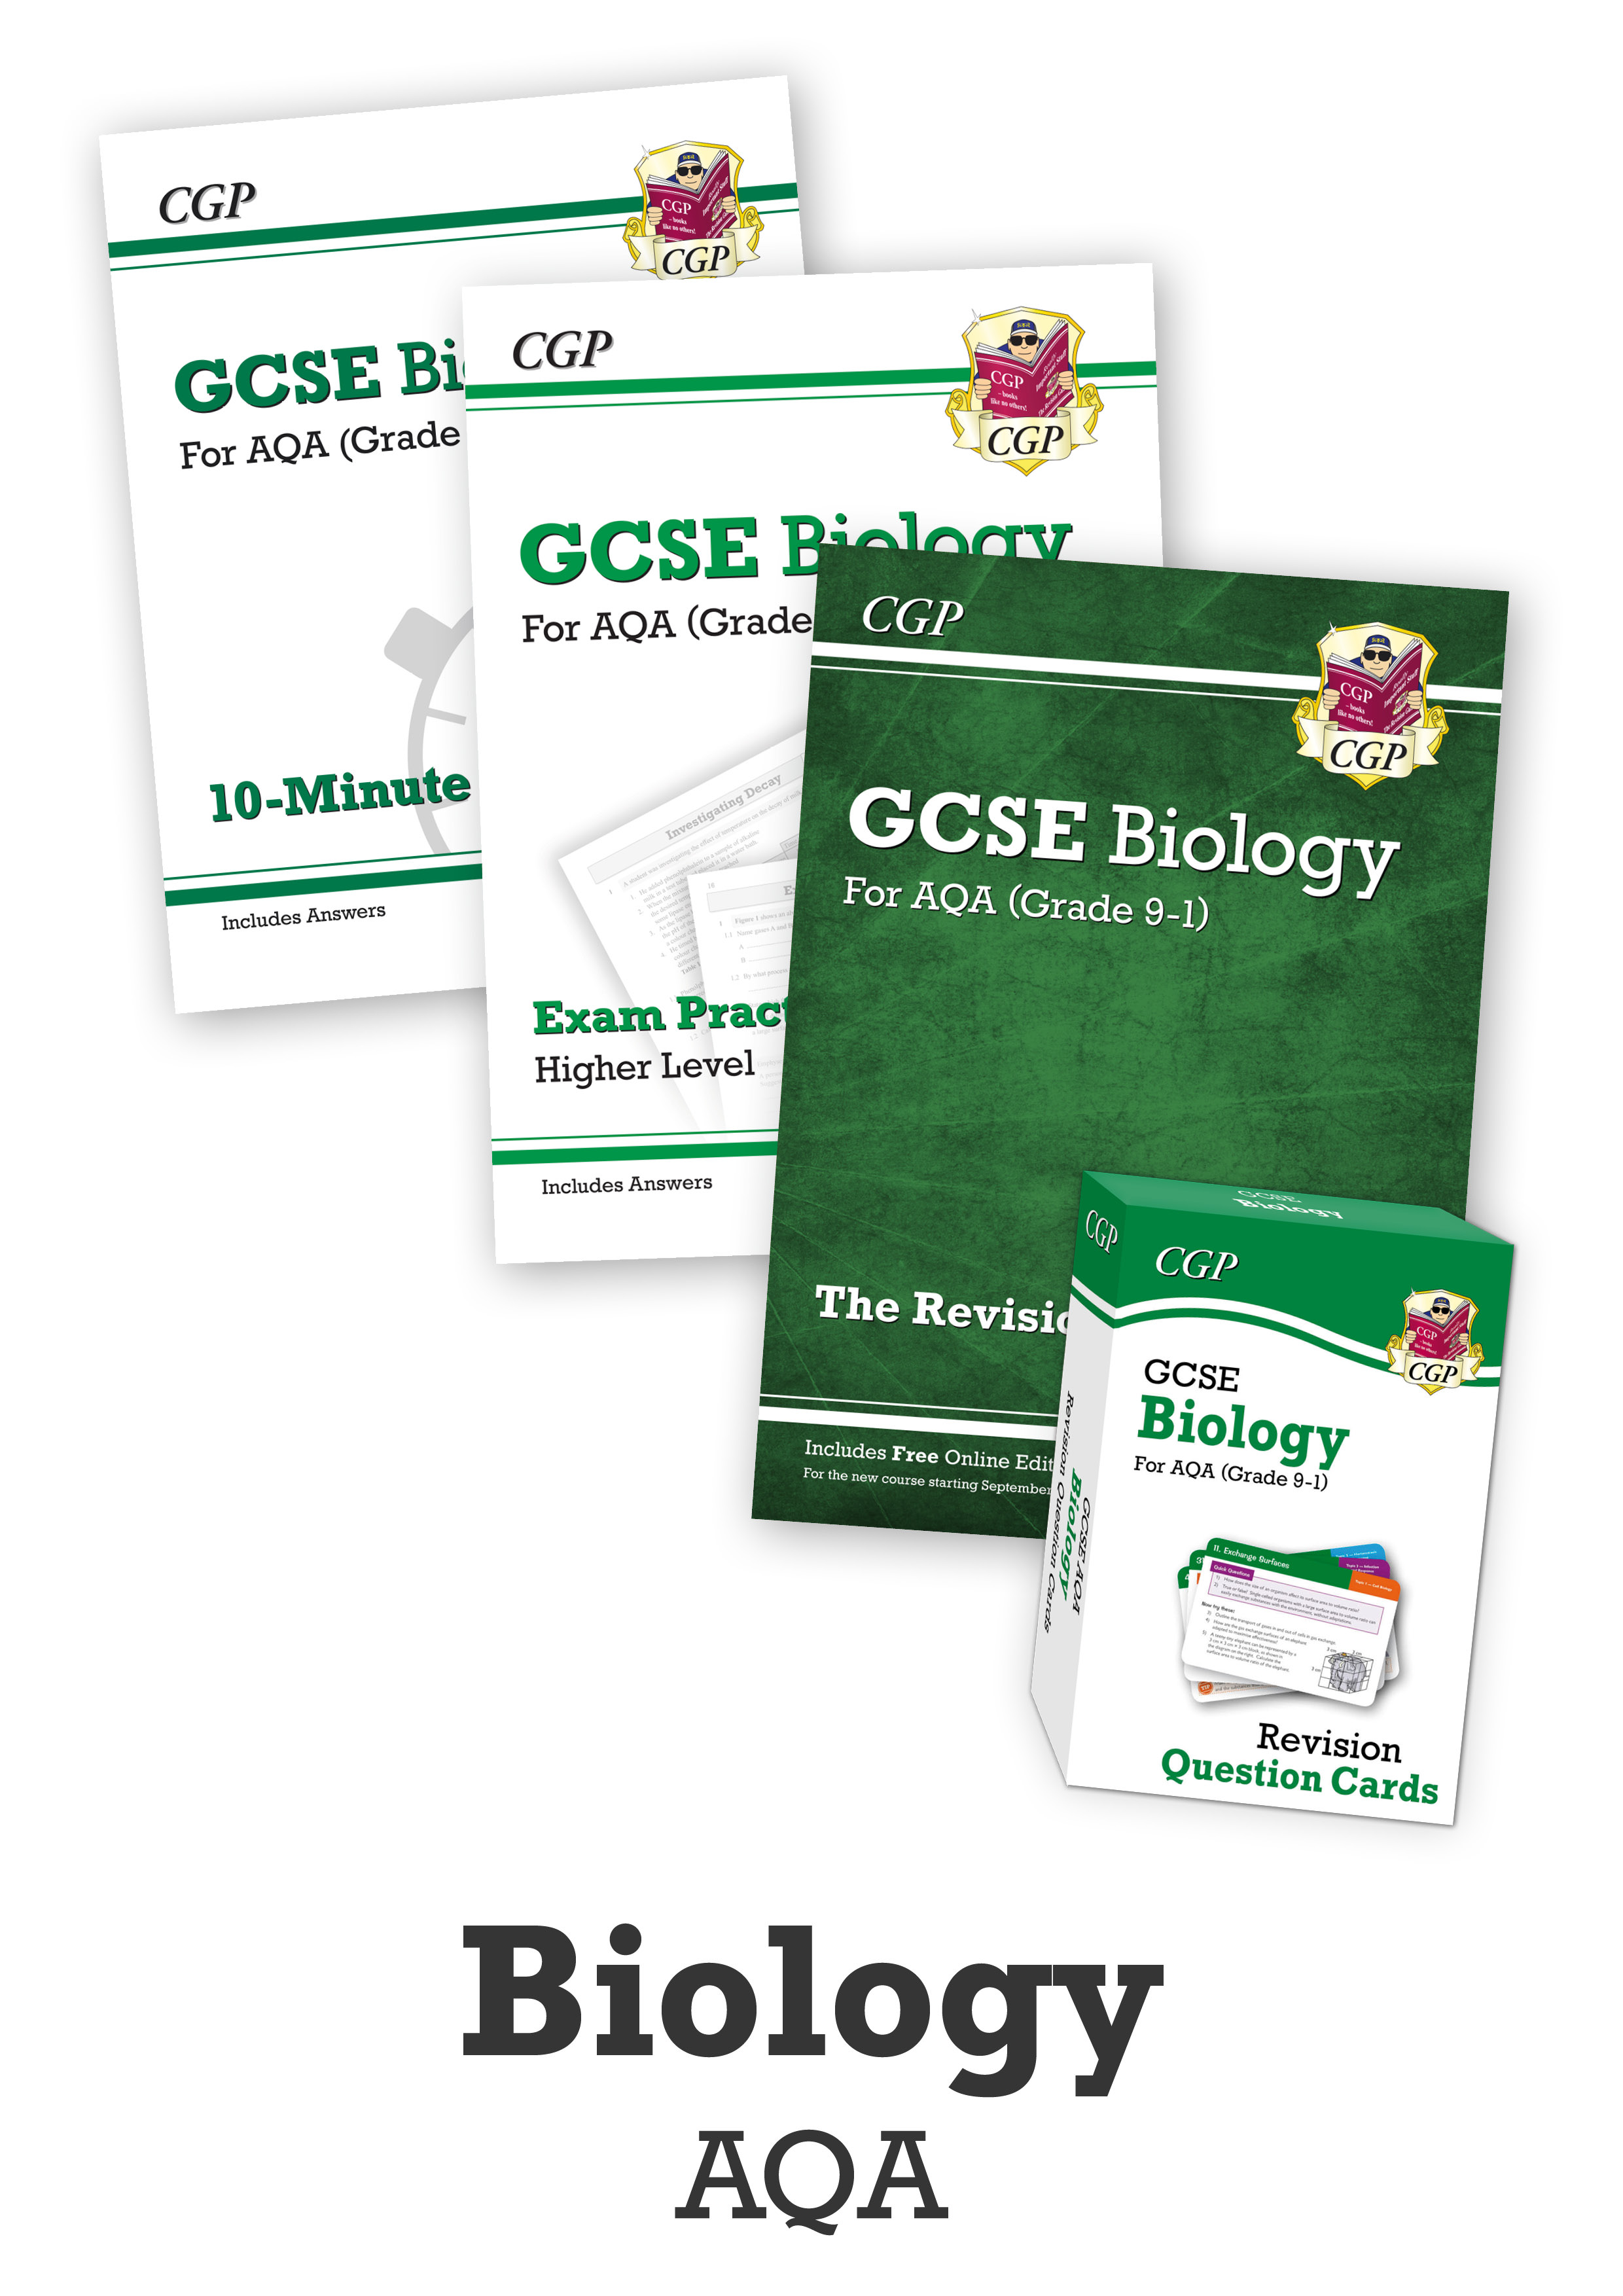 BACUB41 - GCSE Catch-Up Revision Essentials Bundle: AQA Biology